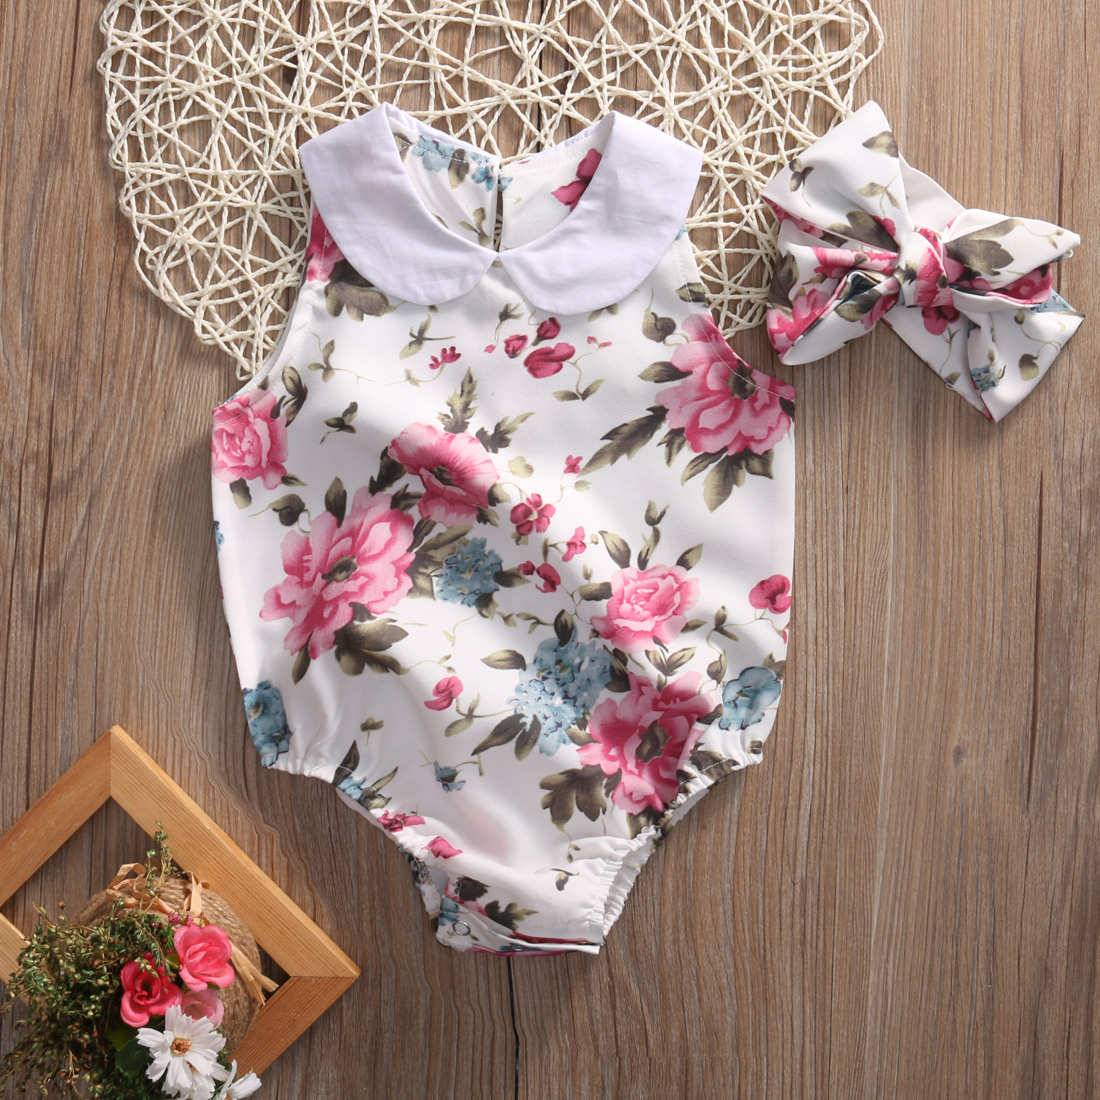 2pcs !! Summer Floral Newborn Infant Baby Girl Clothes Sleevleess Flower Romper Jumpsuit+Headband Baby Outfits Sunsuit Clothes 2017 floral baby romper newborn baby girl clothes ruffles sleeve bodysuit headband 2pcs outfit bebek giyim sunsuit 0 24m